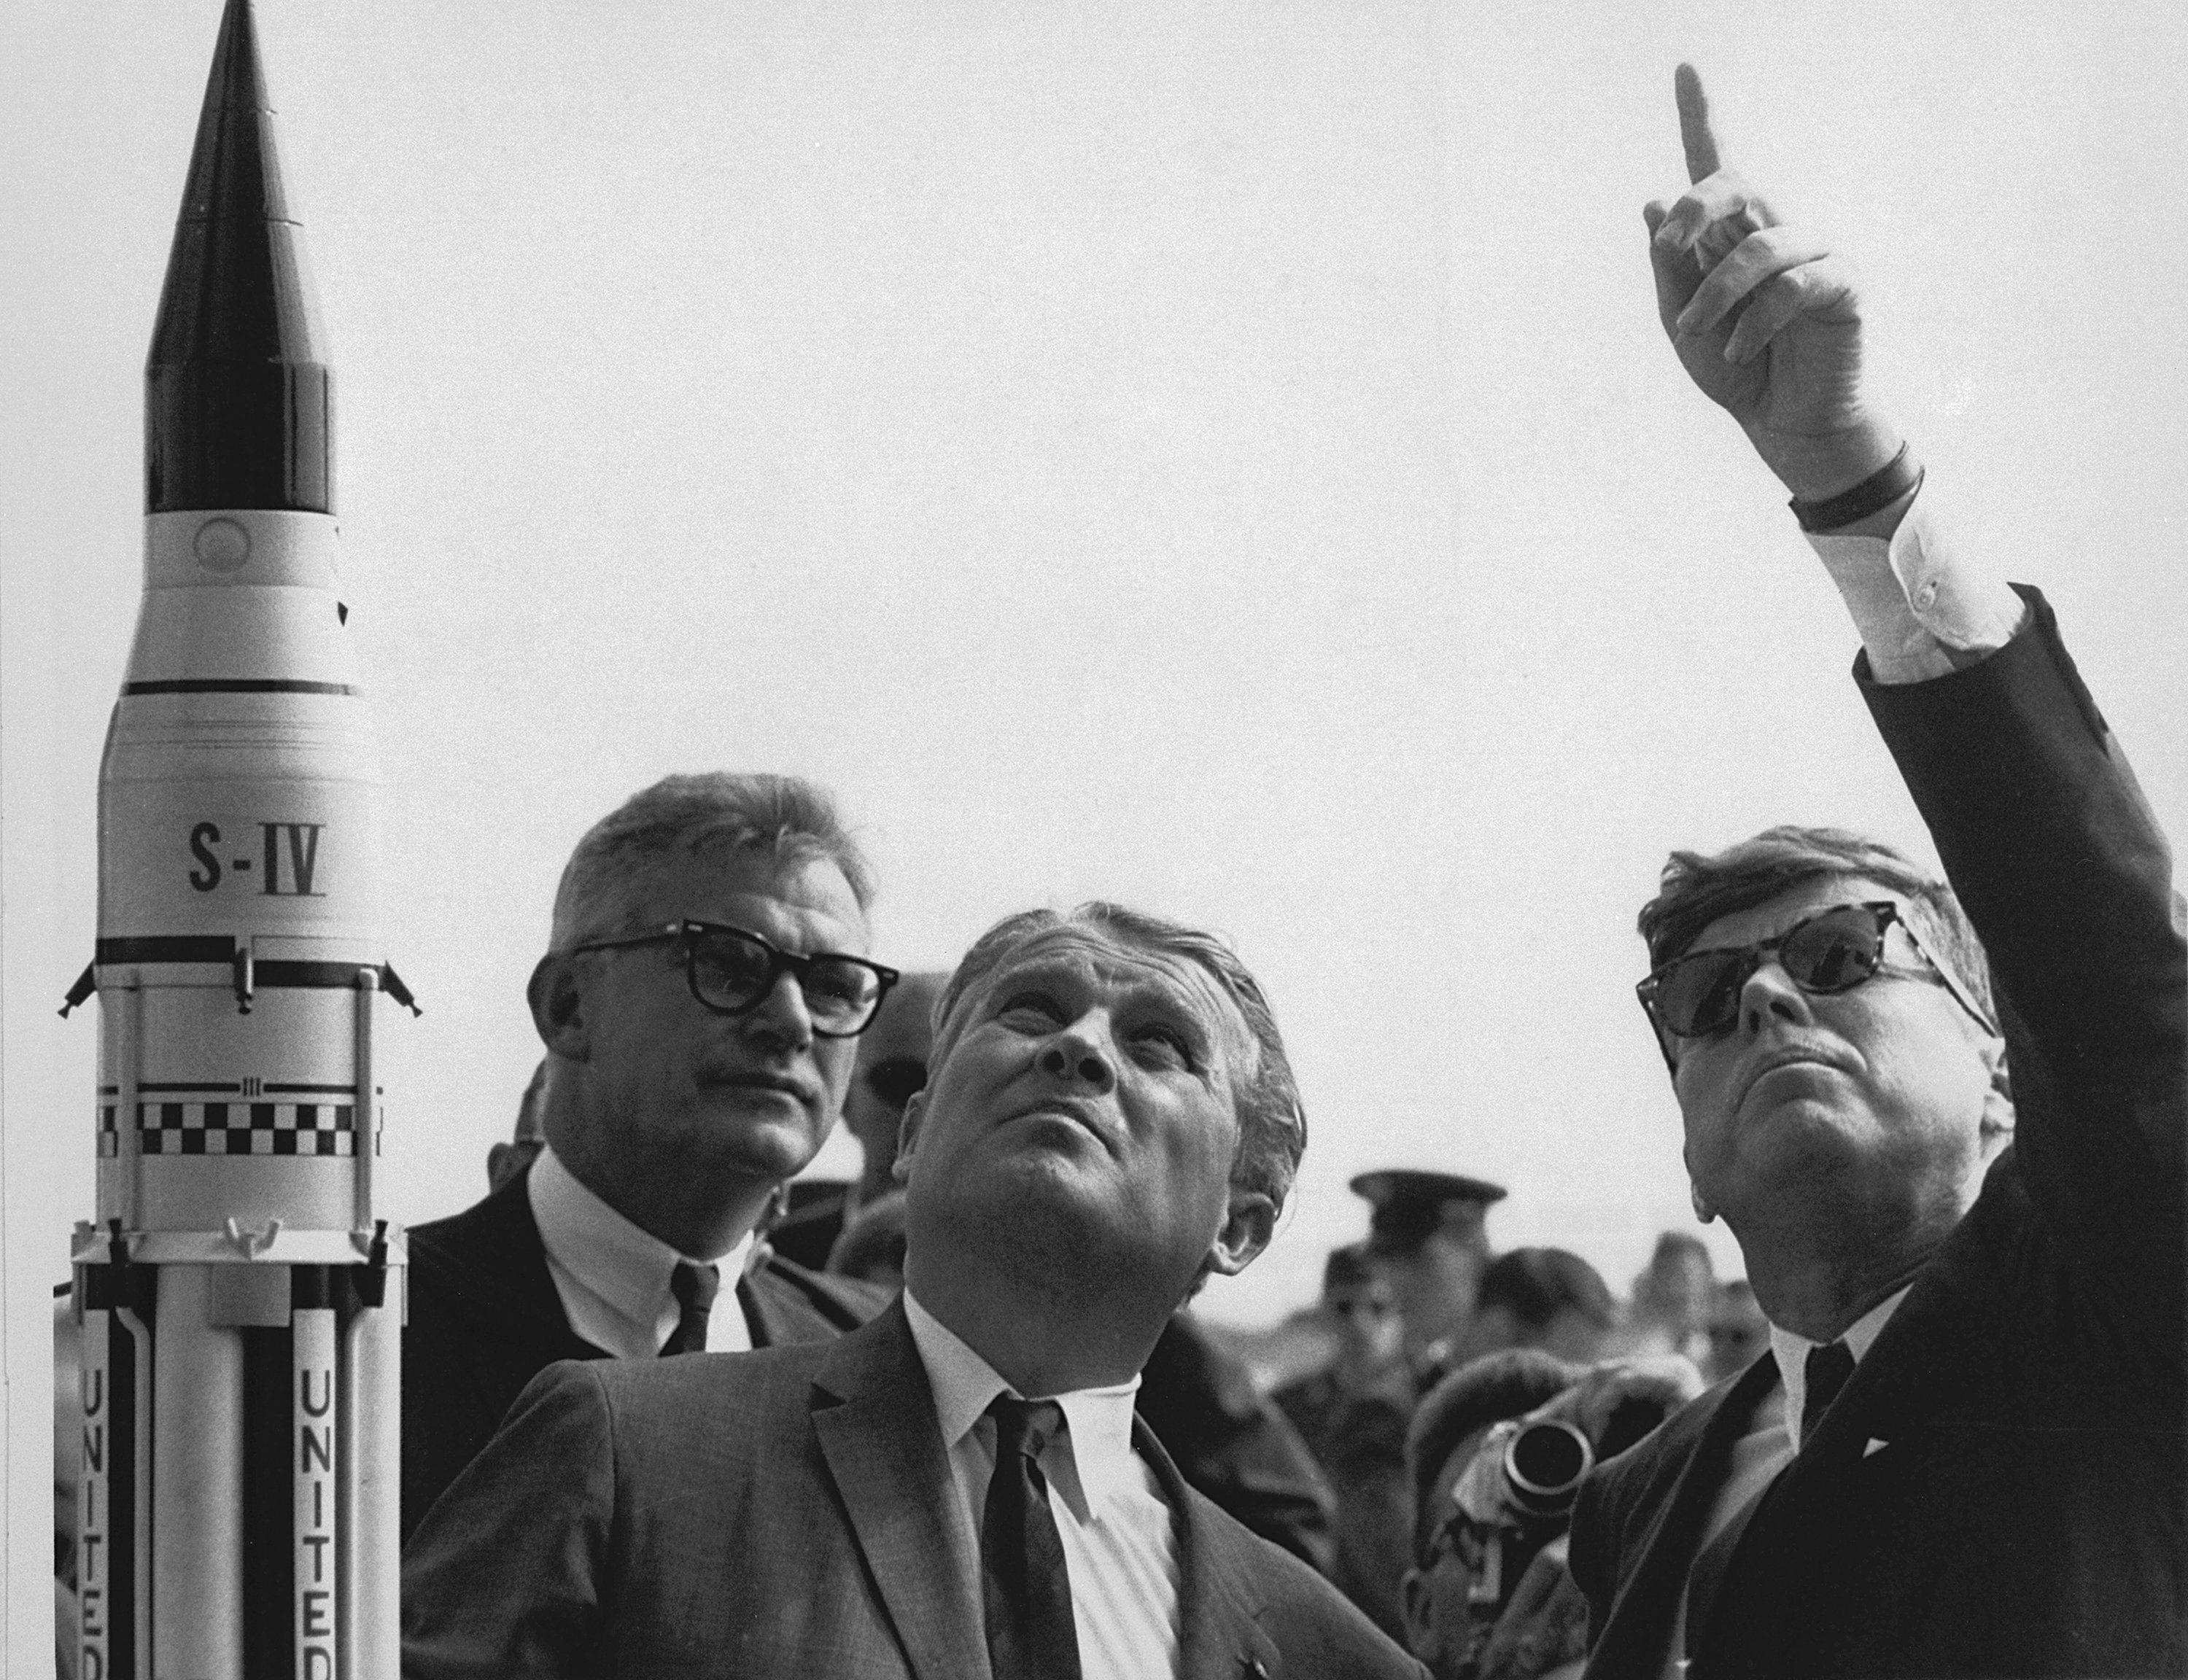 Wernher von Braun Memorial Symposium - September 10 to 12, 2019 - Huntsville, Alabama, USA